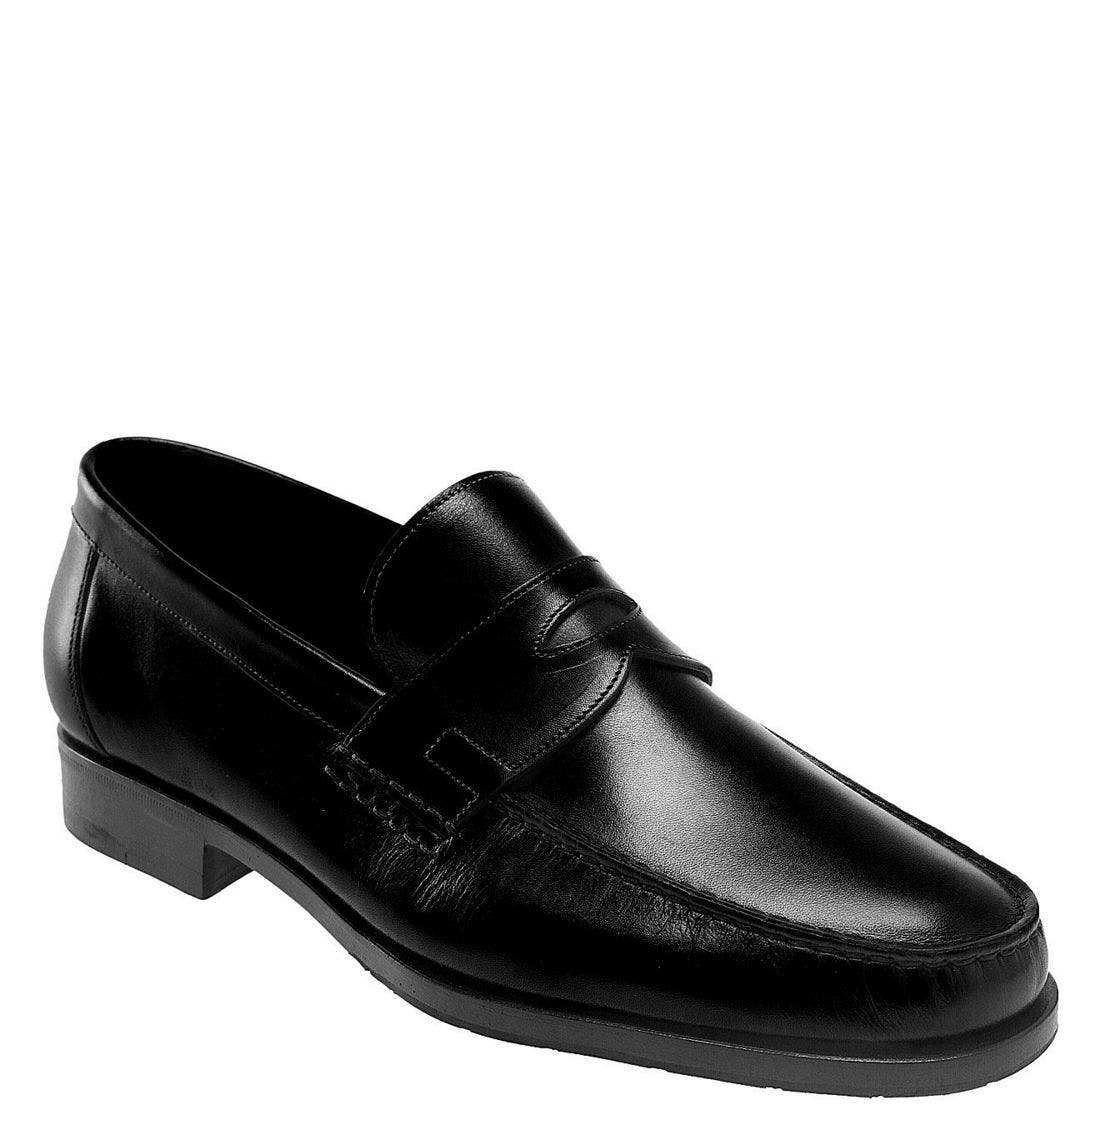 'Haley' Loafer,                             Main thumbnail 1, color,                             BLK